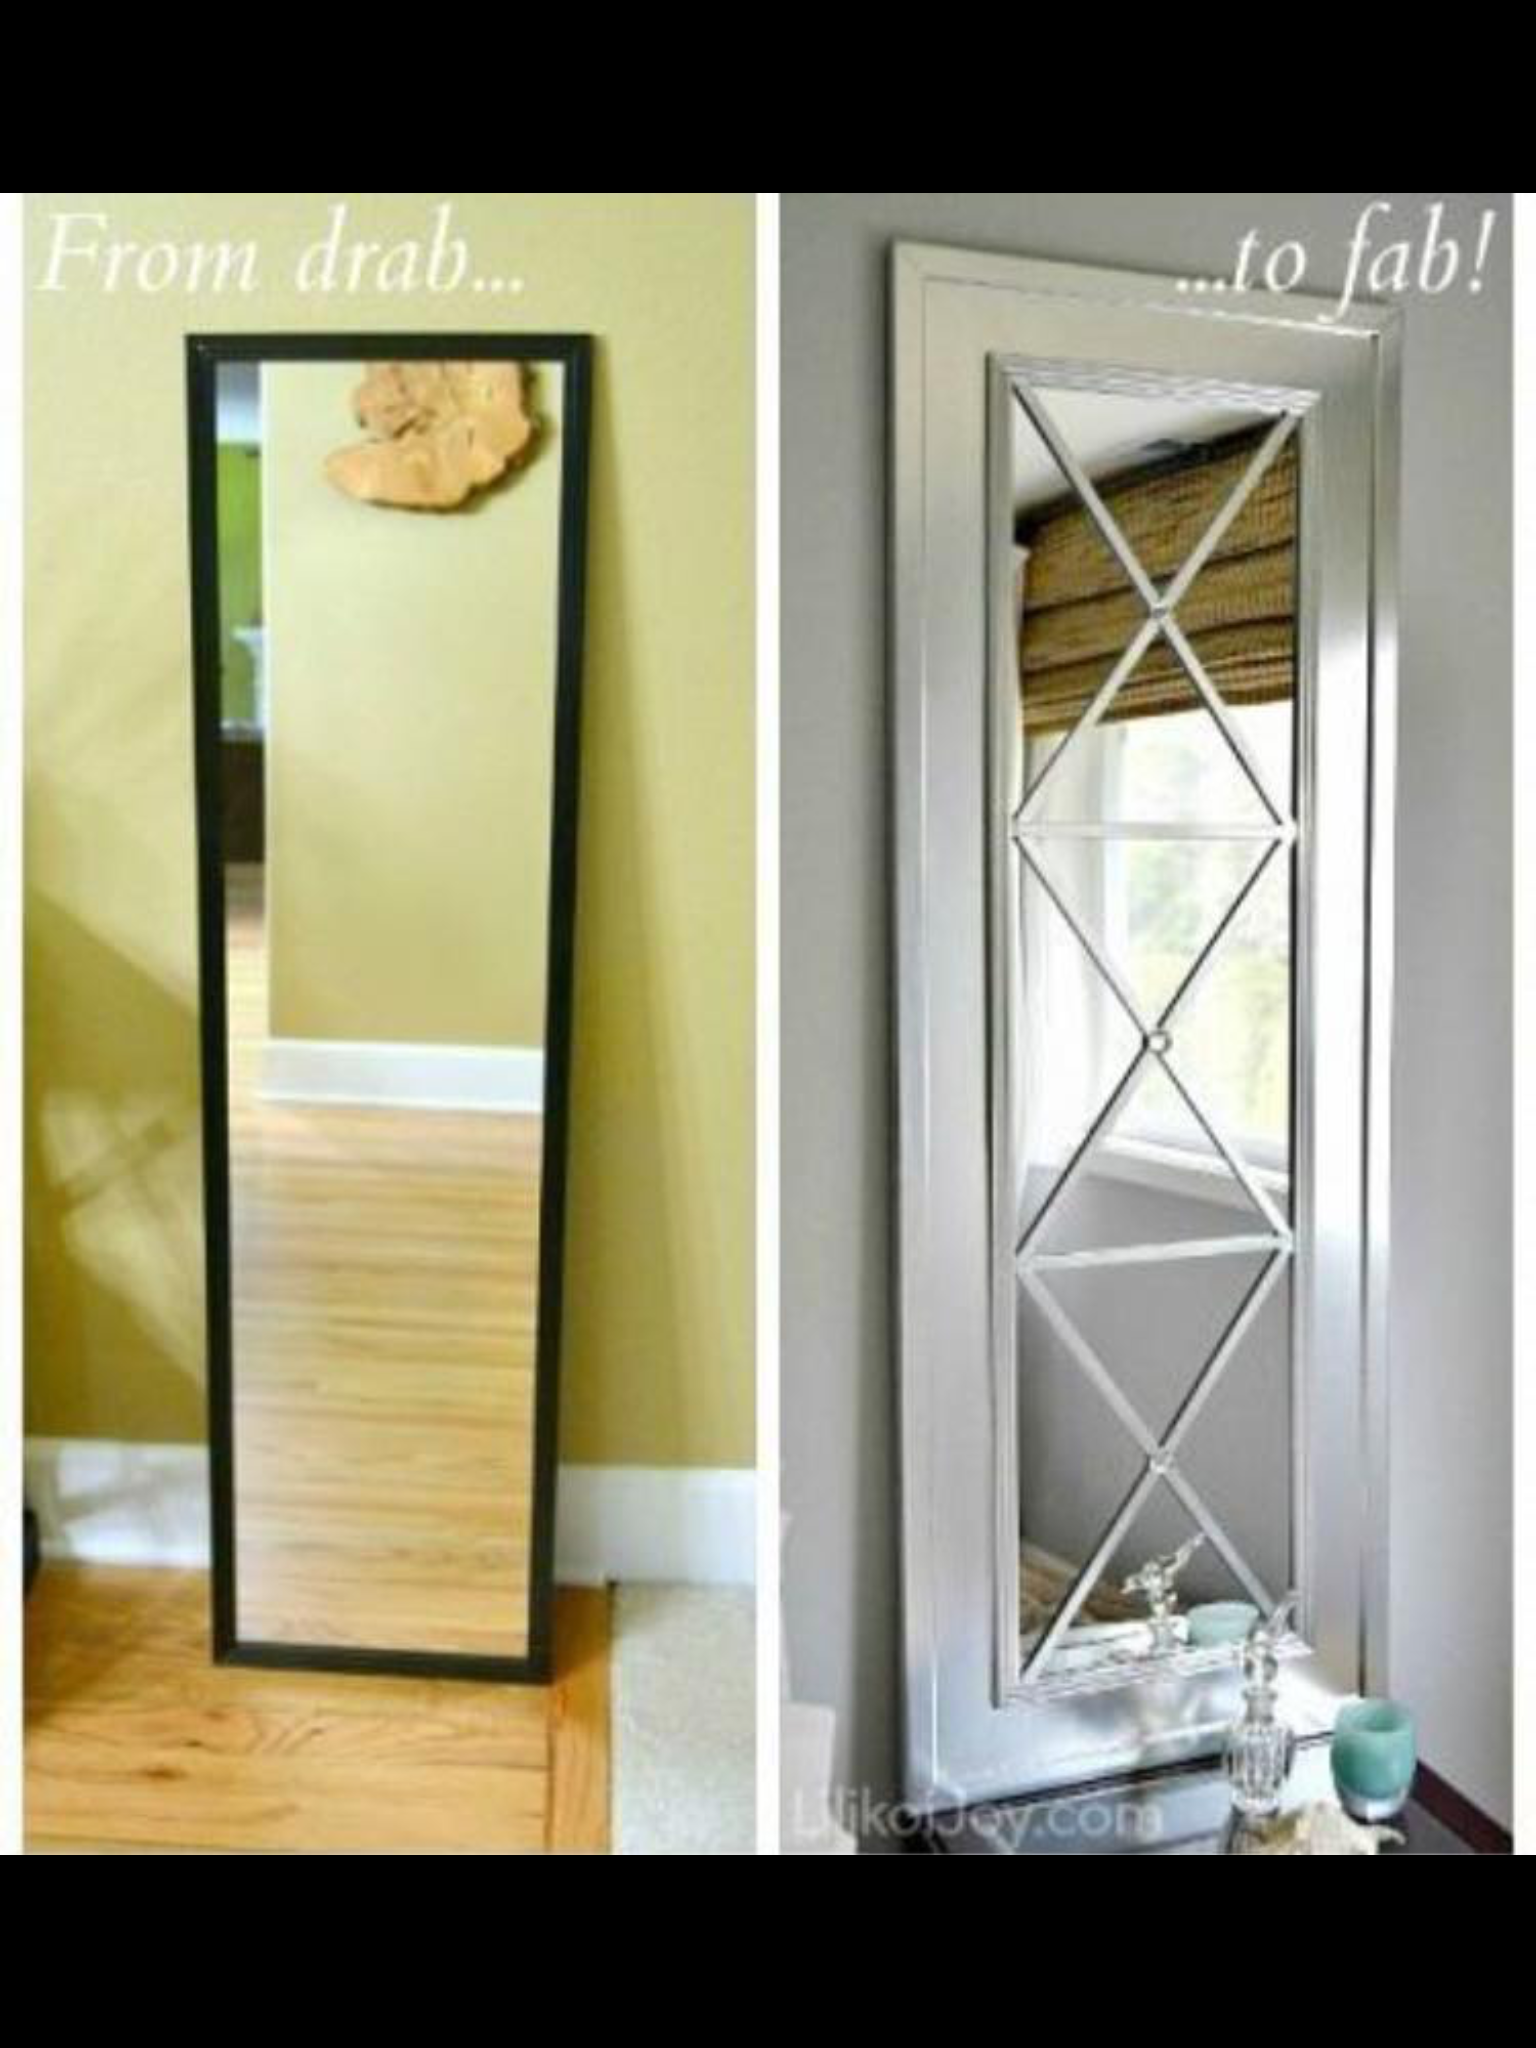 Pin by Ashley Gibbons on DIY | Pinterest | Crafts, House and Bedrooms